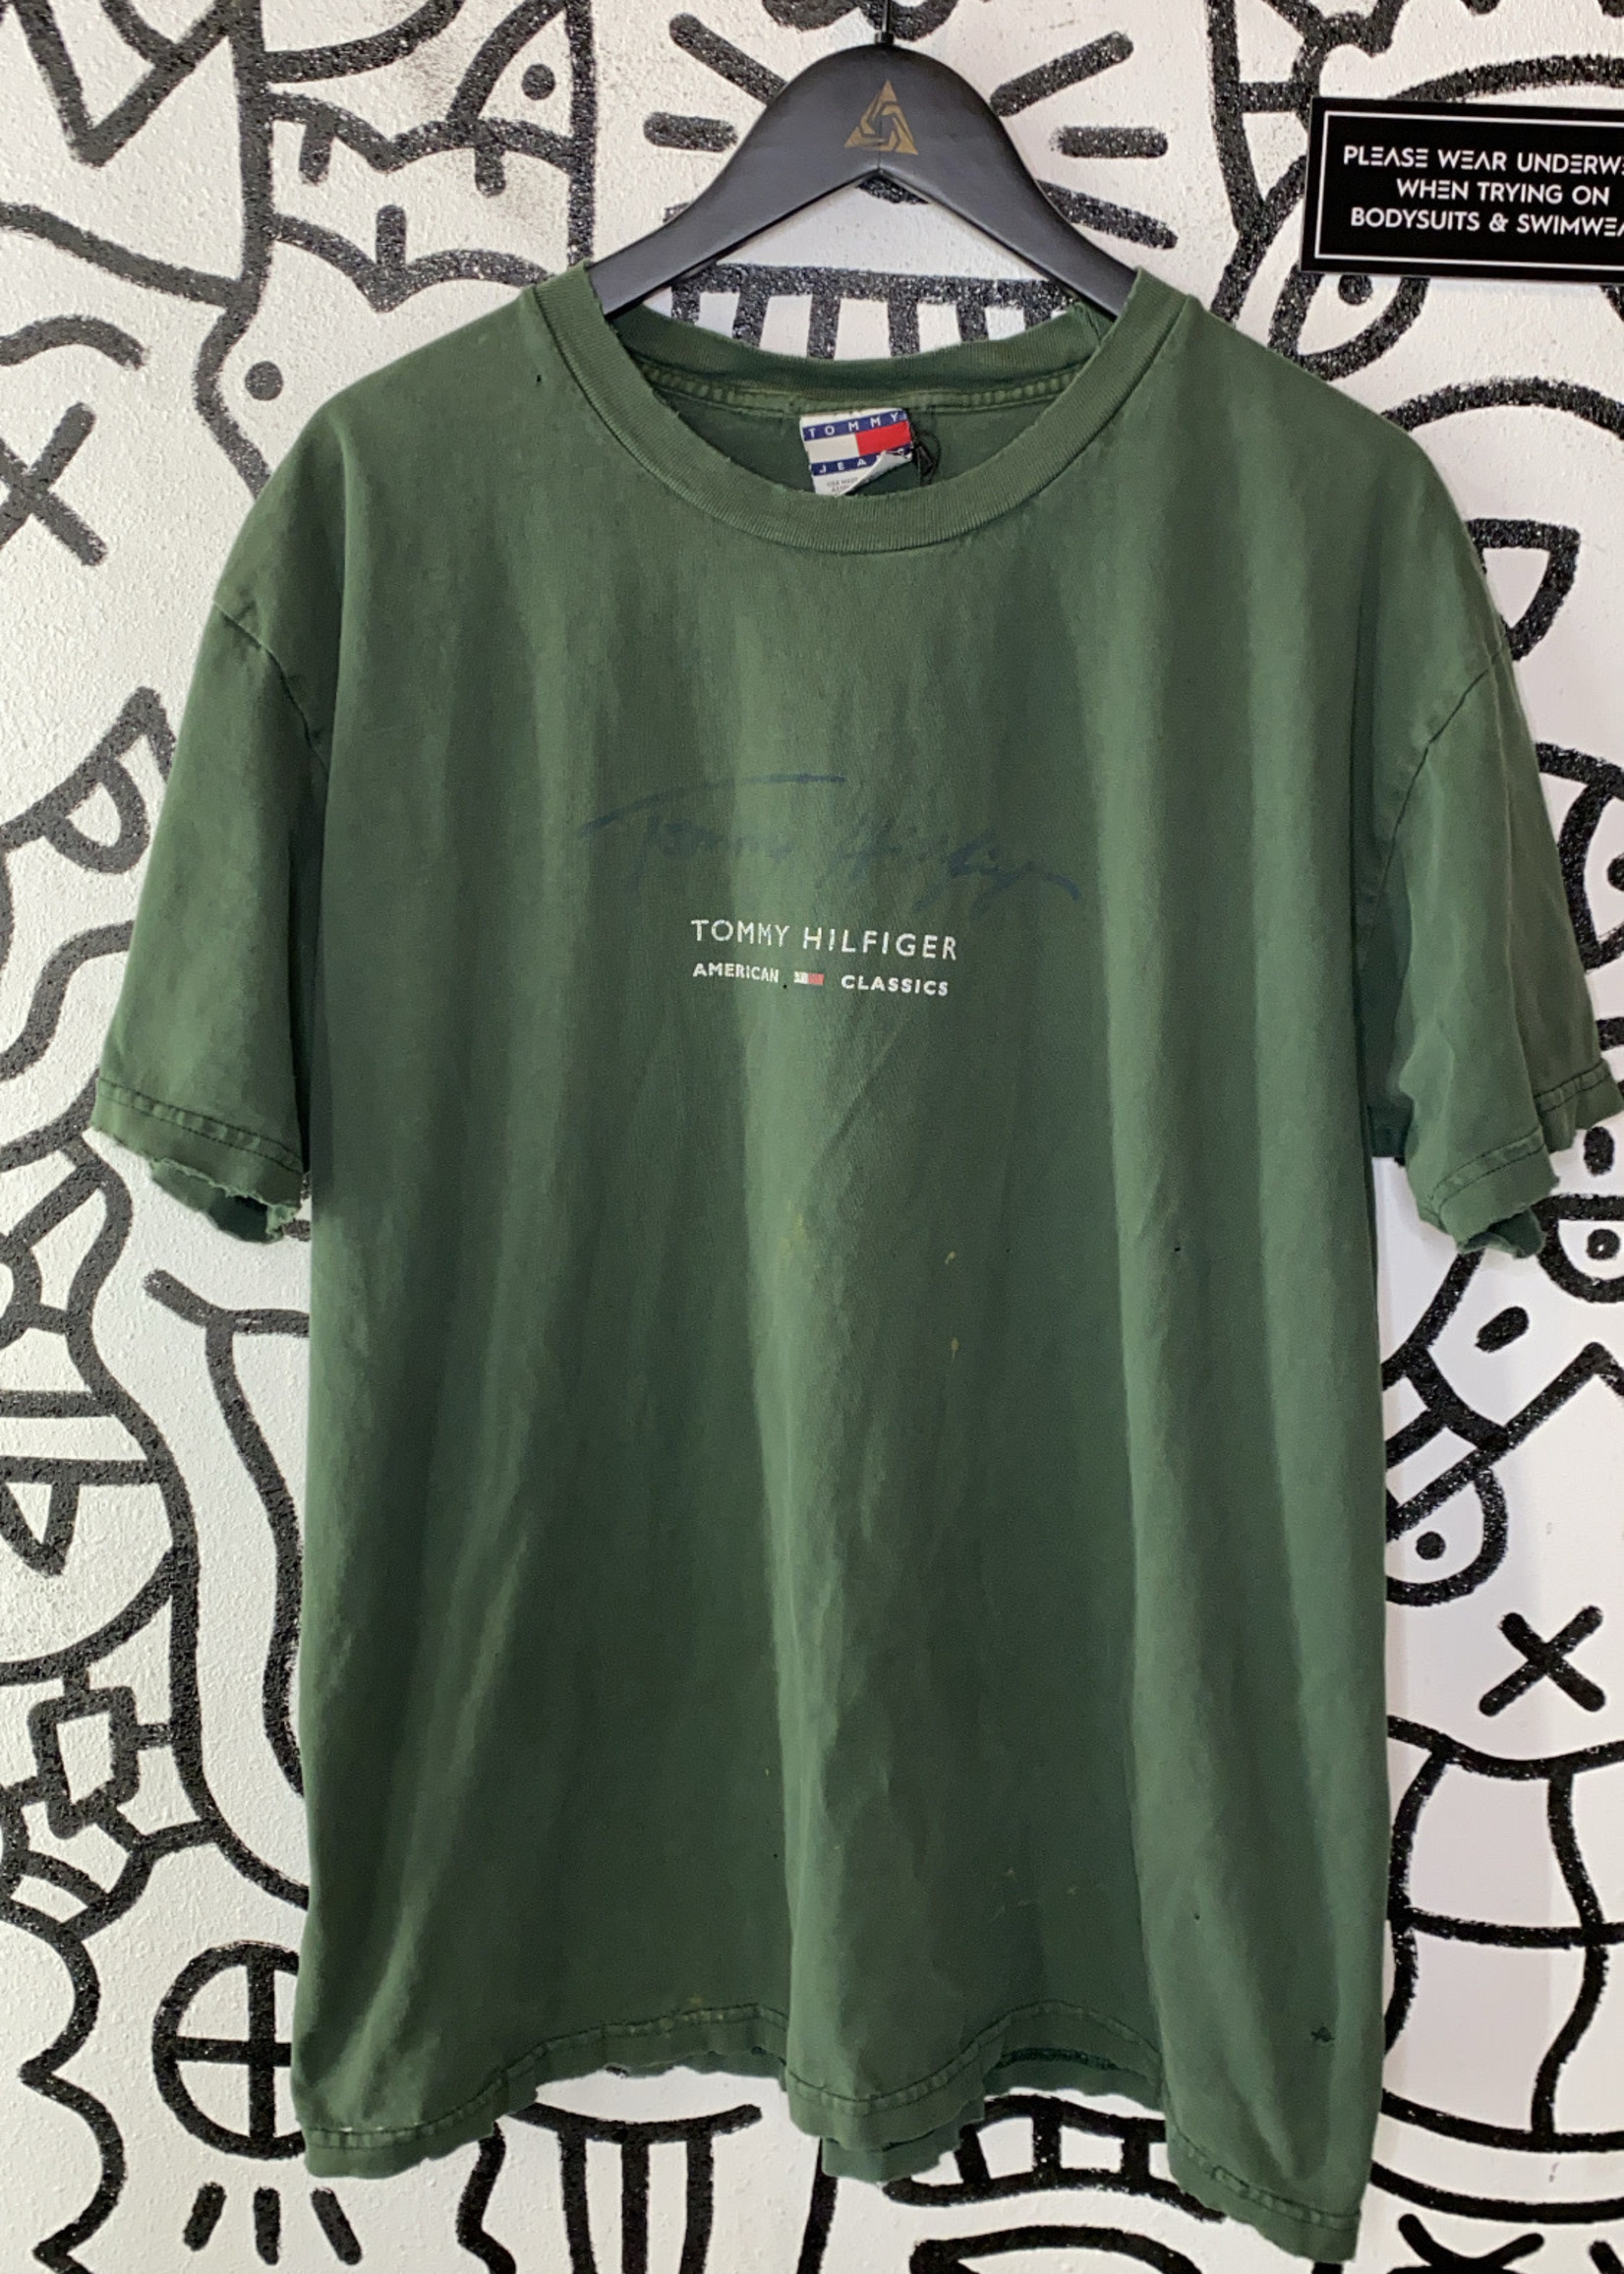 Tommy Hilfiger Vintage Green Distressed Tee As Is XL